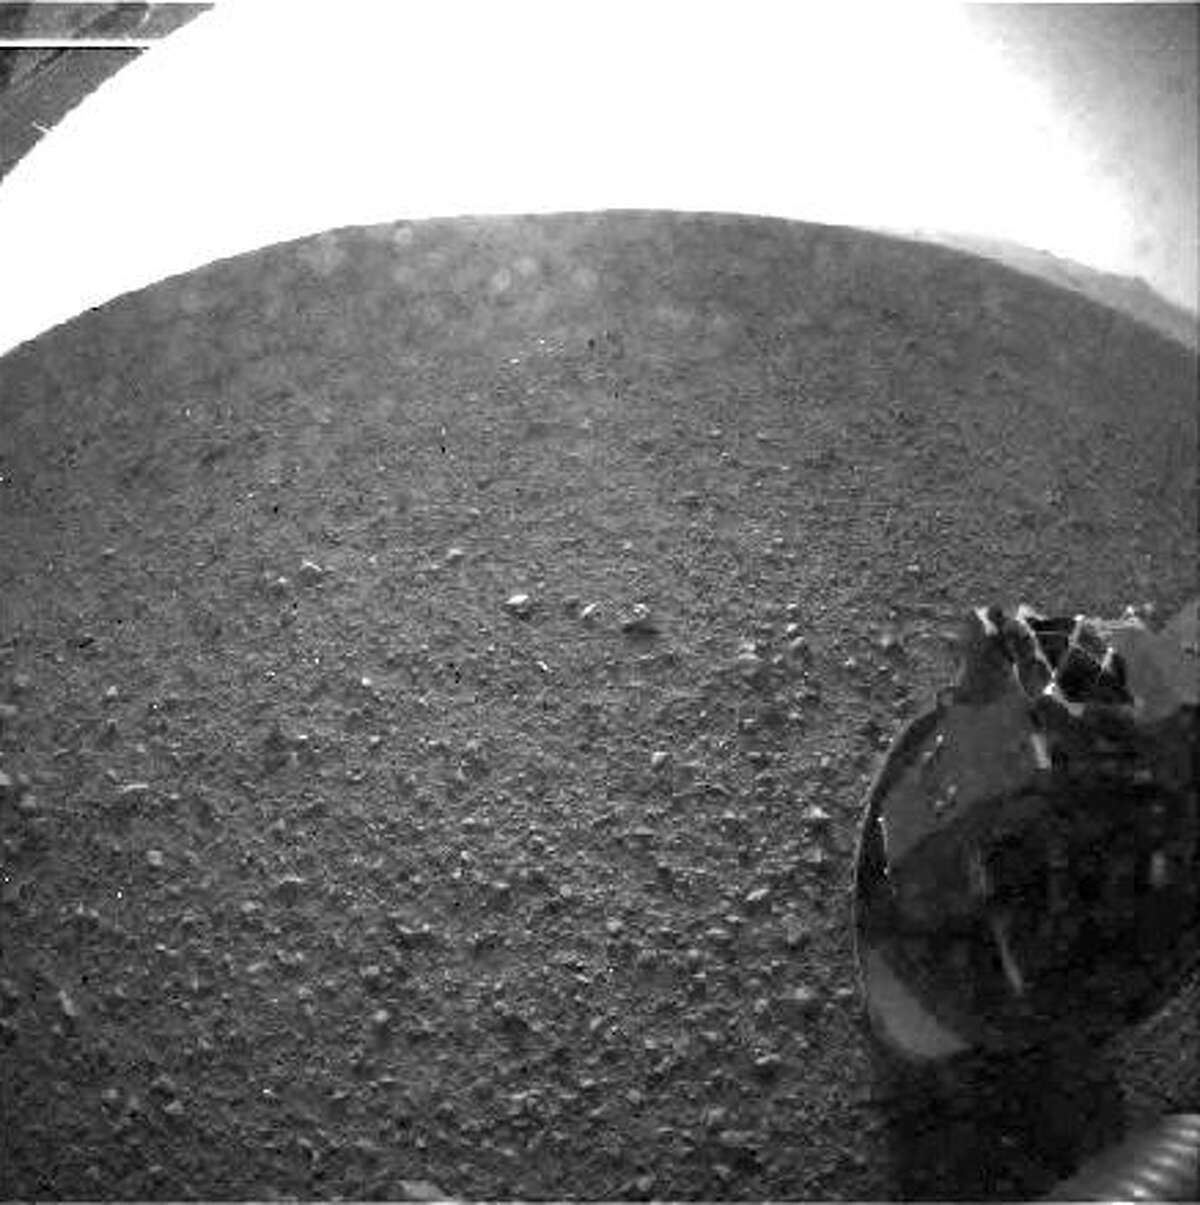 This is one of the first images taken by NASA's Curiosity rover, which landed on Mars Monday, Aug. 6, 2012, CT. The clear dust cover that protected the camera during landing has been sprung open. Part of the spring that released the dust cover can be seen at the bottom right, near the rover's wheel. On the top left, part of the rover's power supply is visible. The cameras are looking directly into the sun, so the top of the image is saturated.